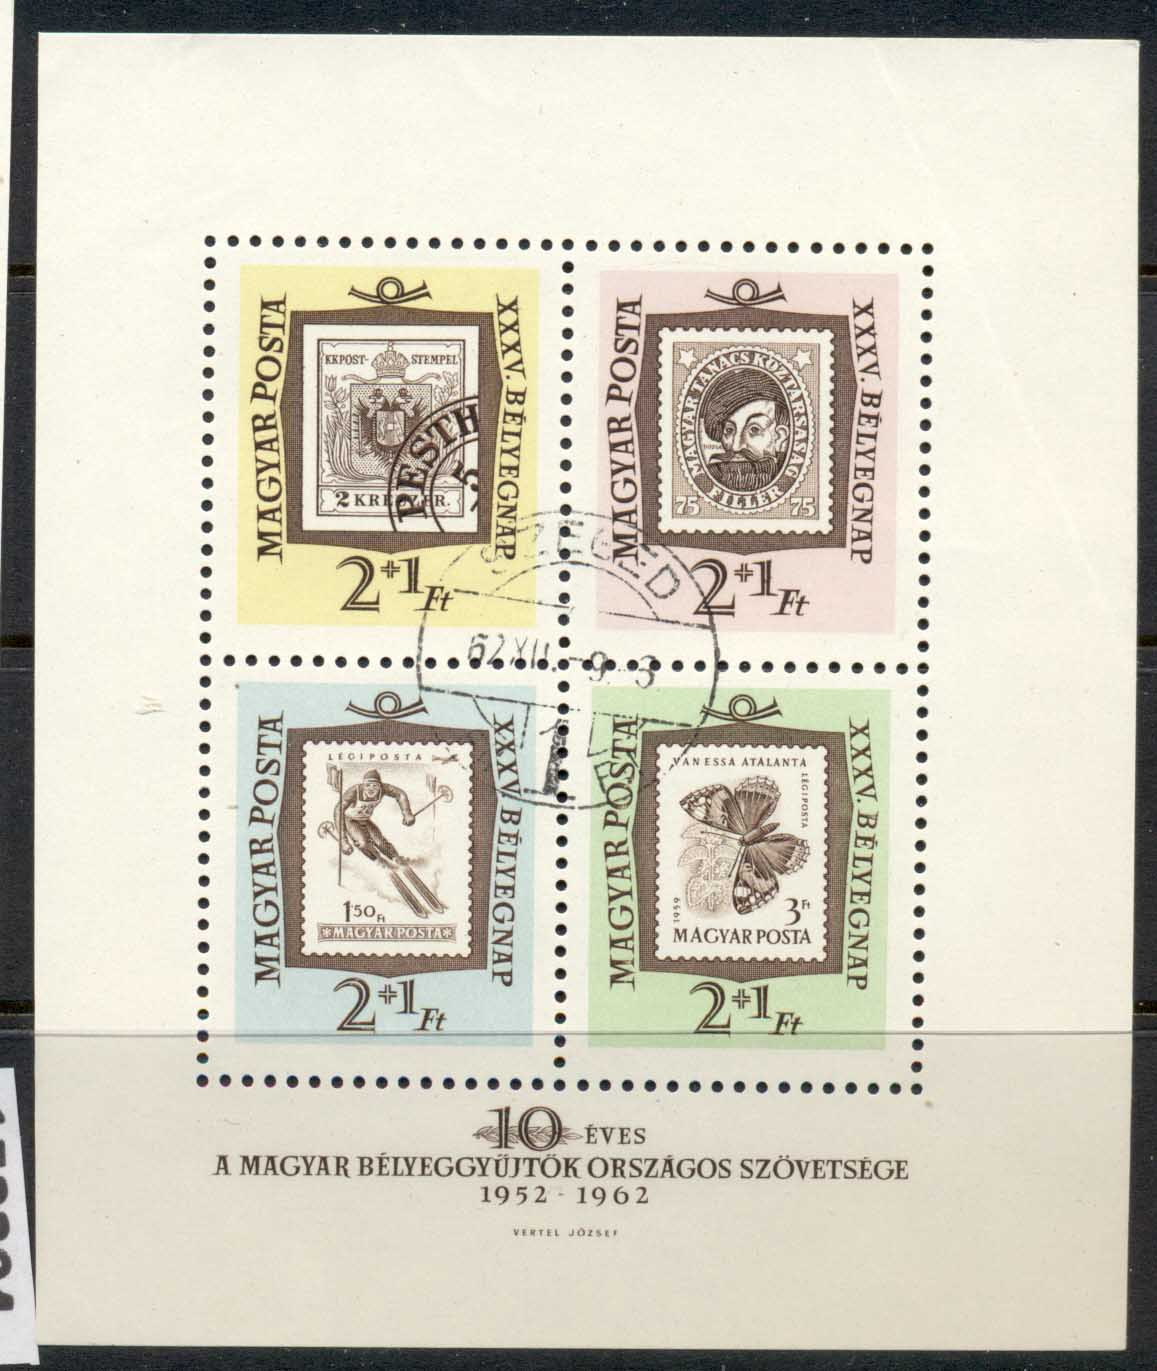 Hungary 1962 Stamp day MS CTO